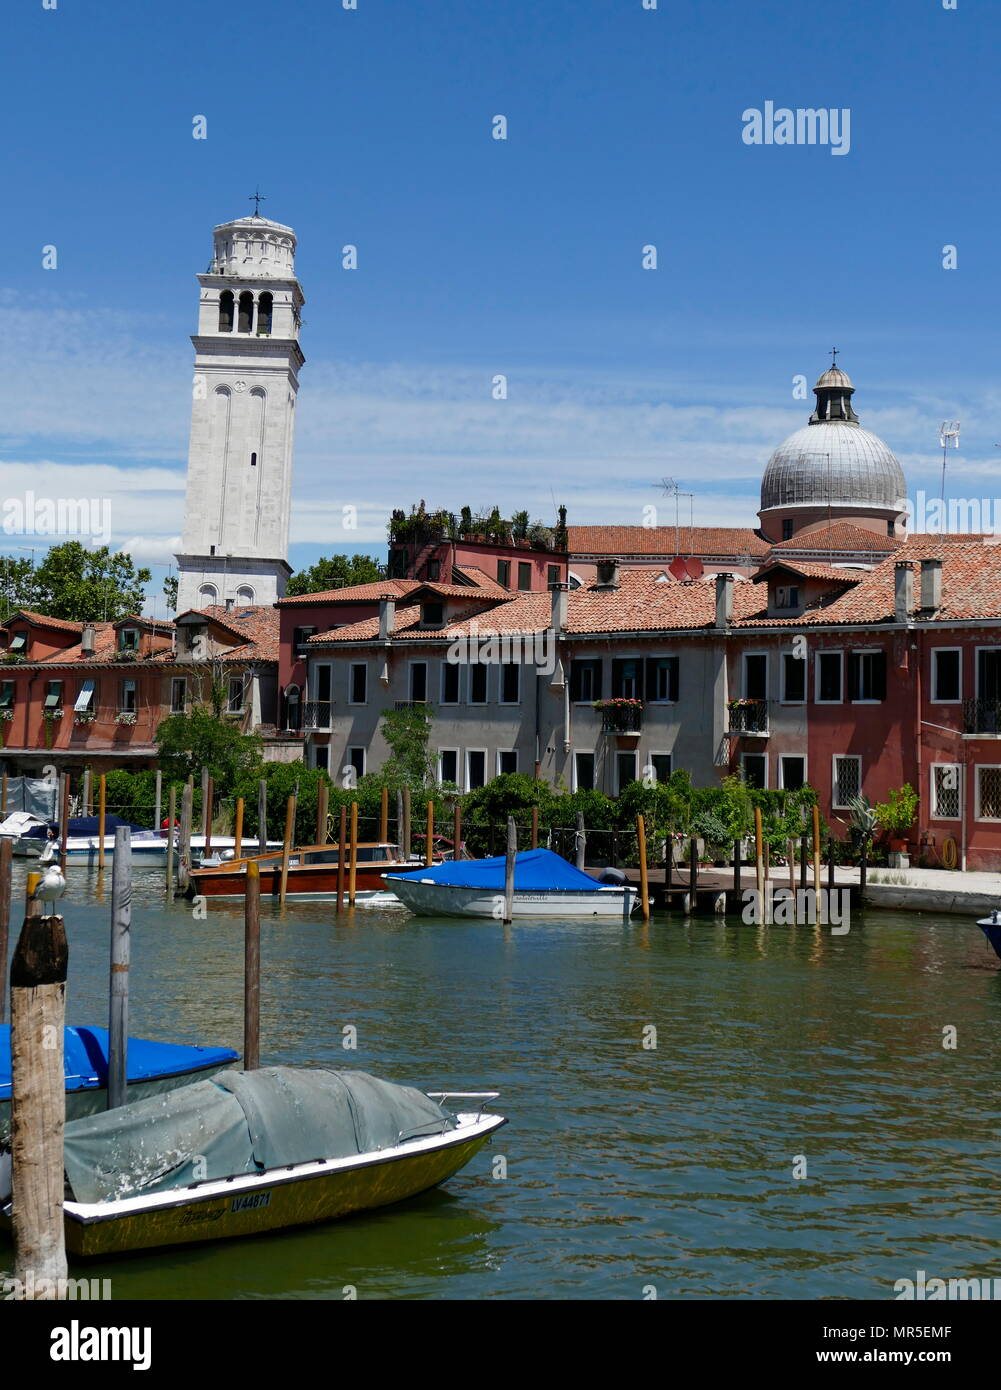 buildings in the Venetian Arsenale district; This area was a complex of former shipyards and armouries clustered together in the city of Venice in northern Italy, dating from 12th century AD - Stock Image